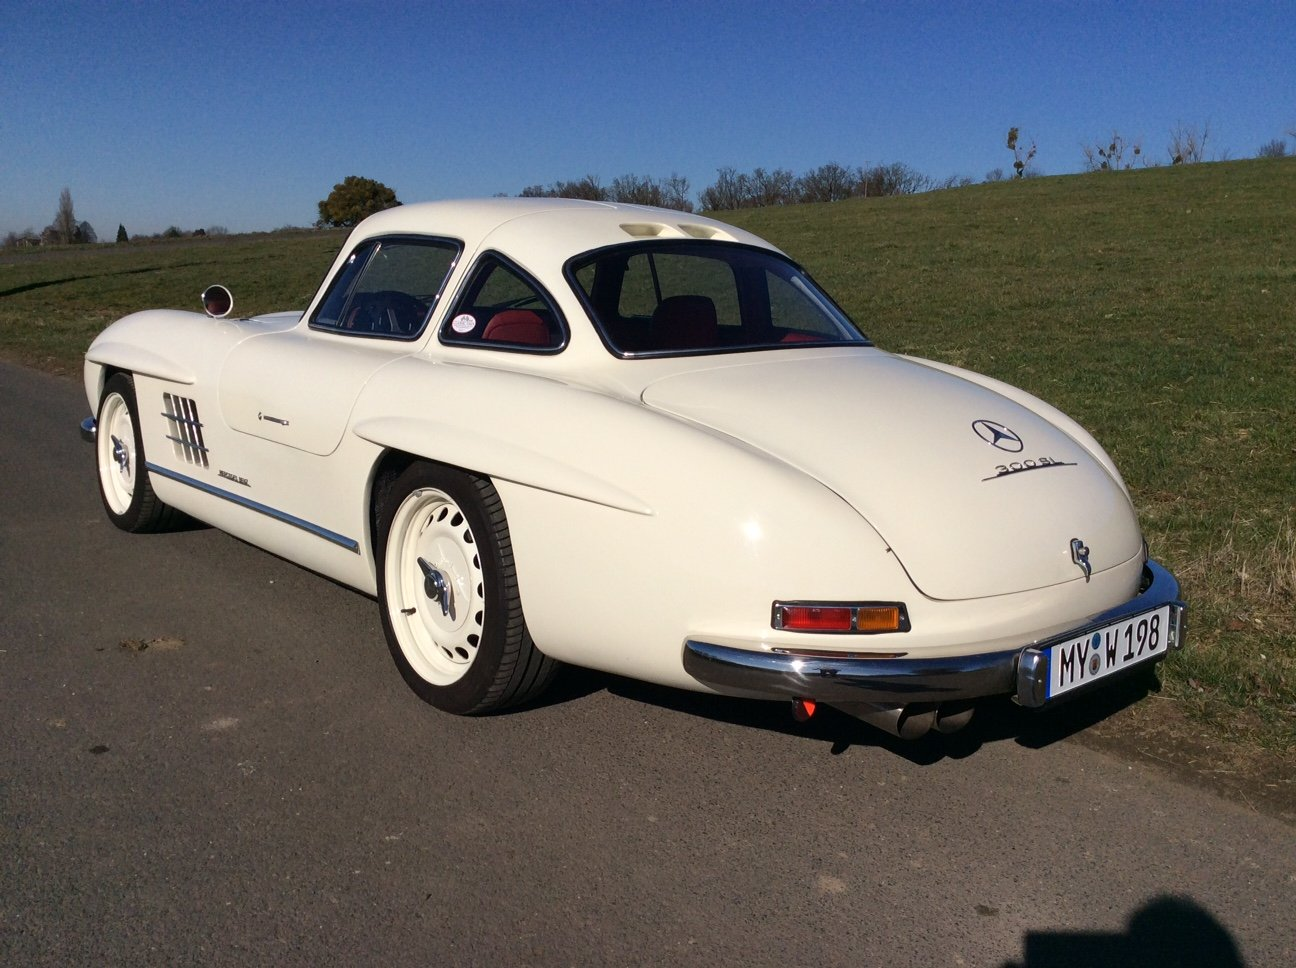 2002 Mercedes 300 SL Gullwing AMG 32 Kompr. Replica For Sale (picture 4 of 6)